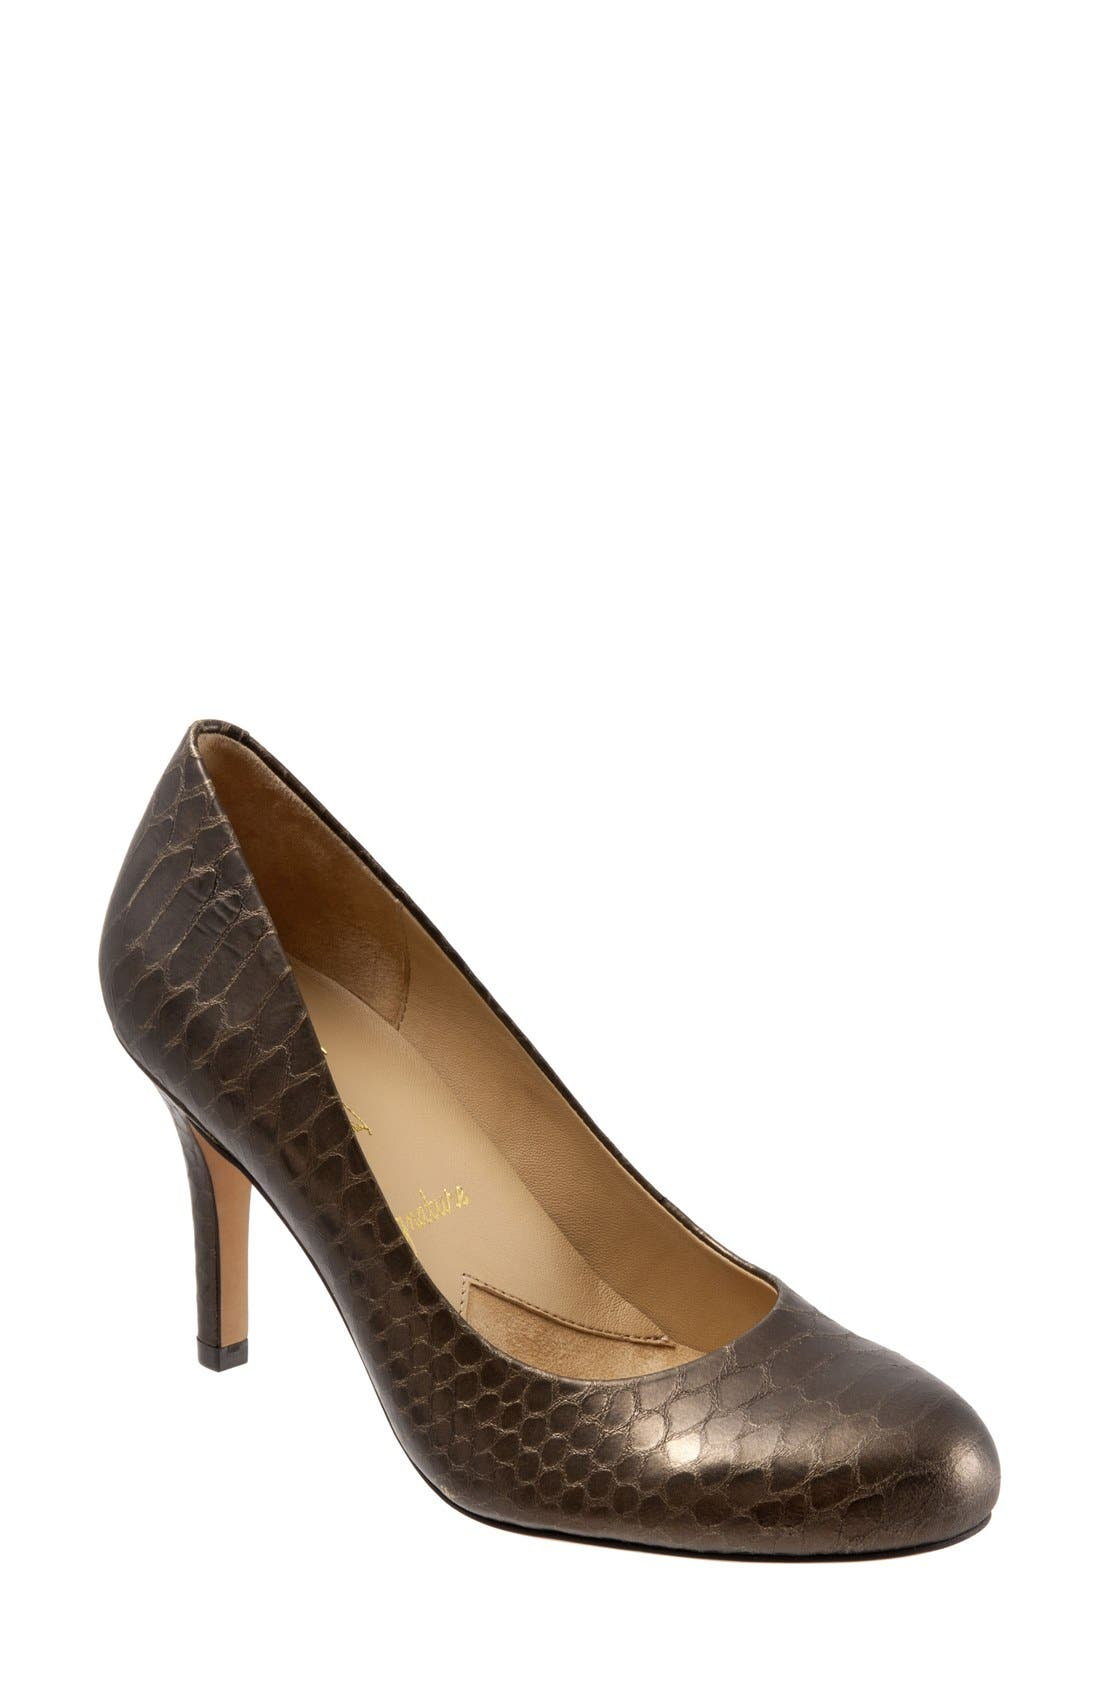 Alternate Image 1 Selected - Trotters 'Signature Gigi' Round Toe Pump (Women)